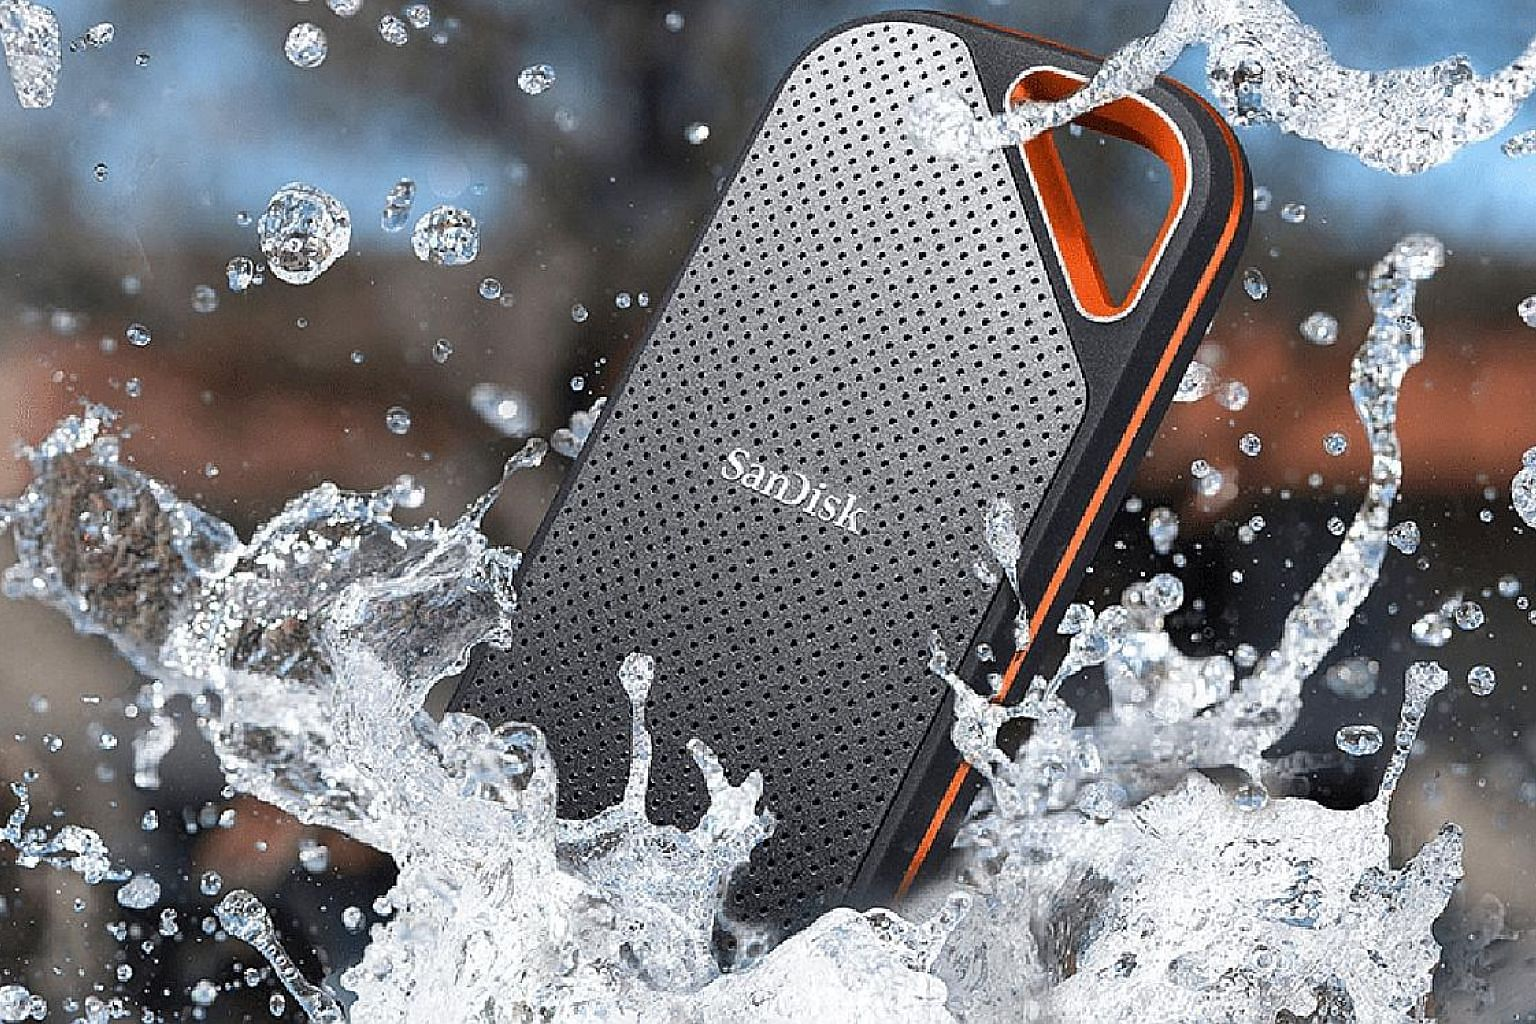 The SanDisk Extreme Pro E80 portable solid-state drive has an IP55-rating for protection against dust and water and is shock-resistant against drops from up to heights of 2m.